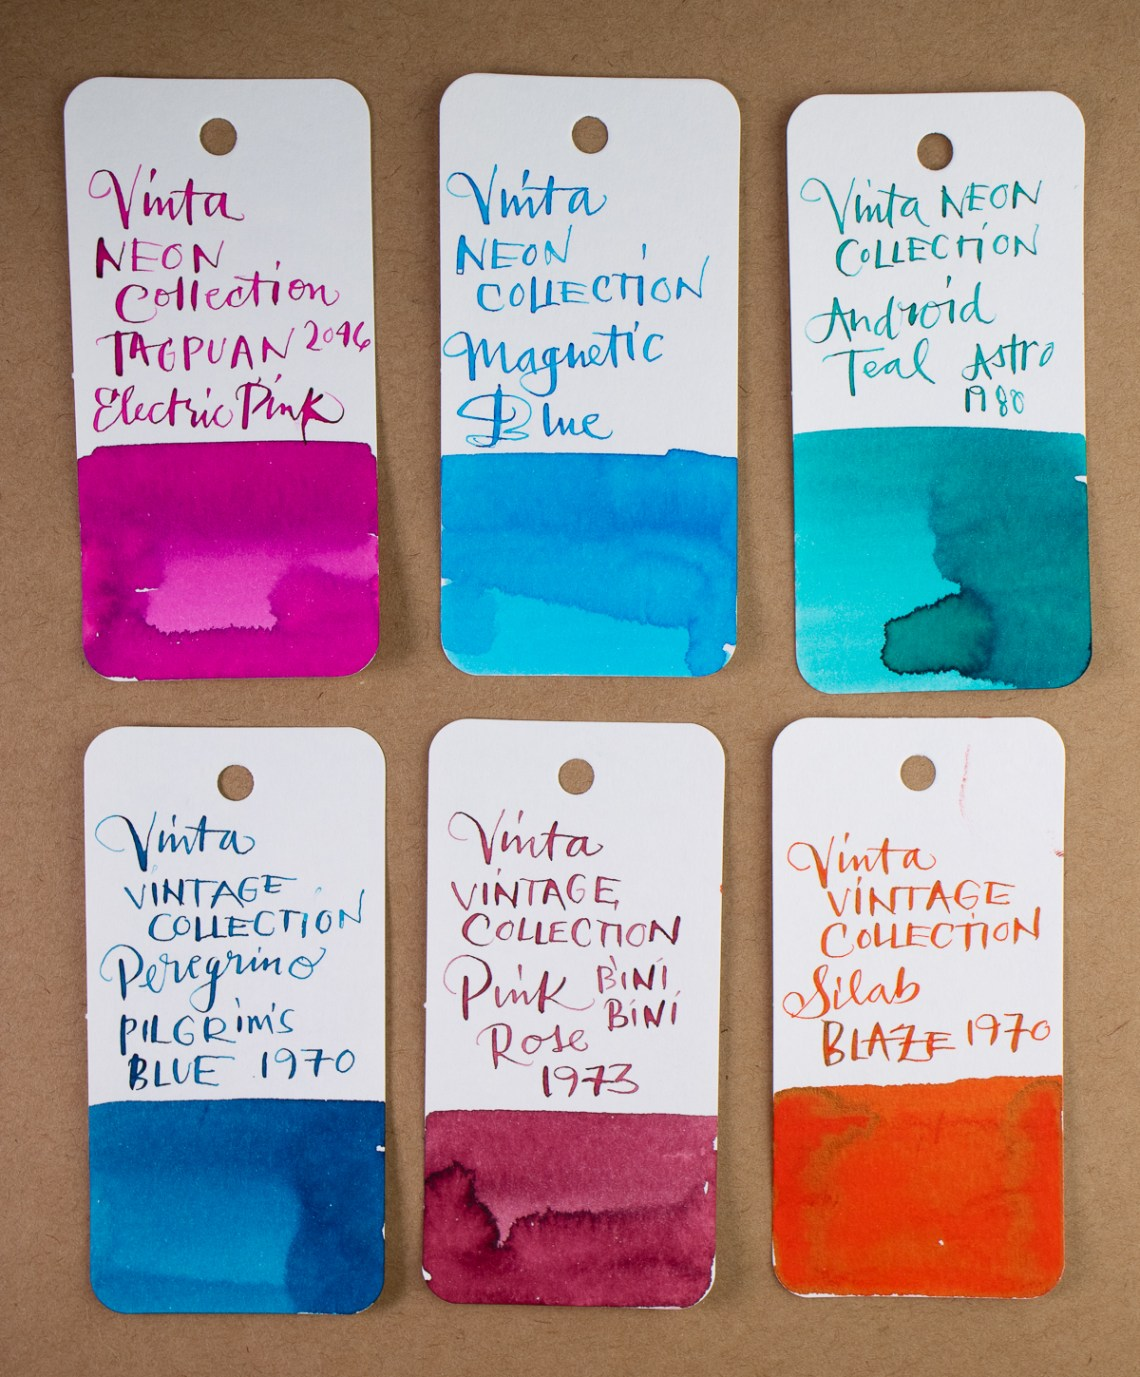 Vinta Vintage & neon Collections ink swatches